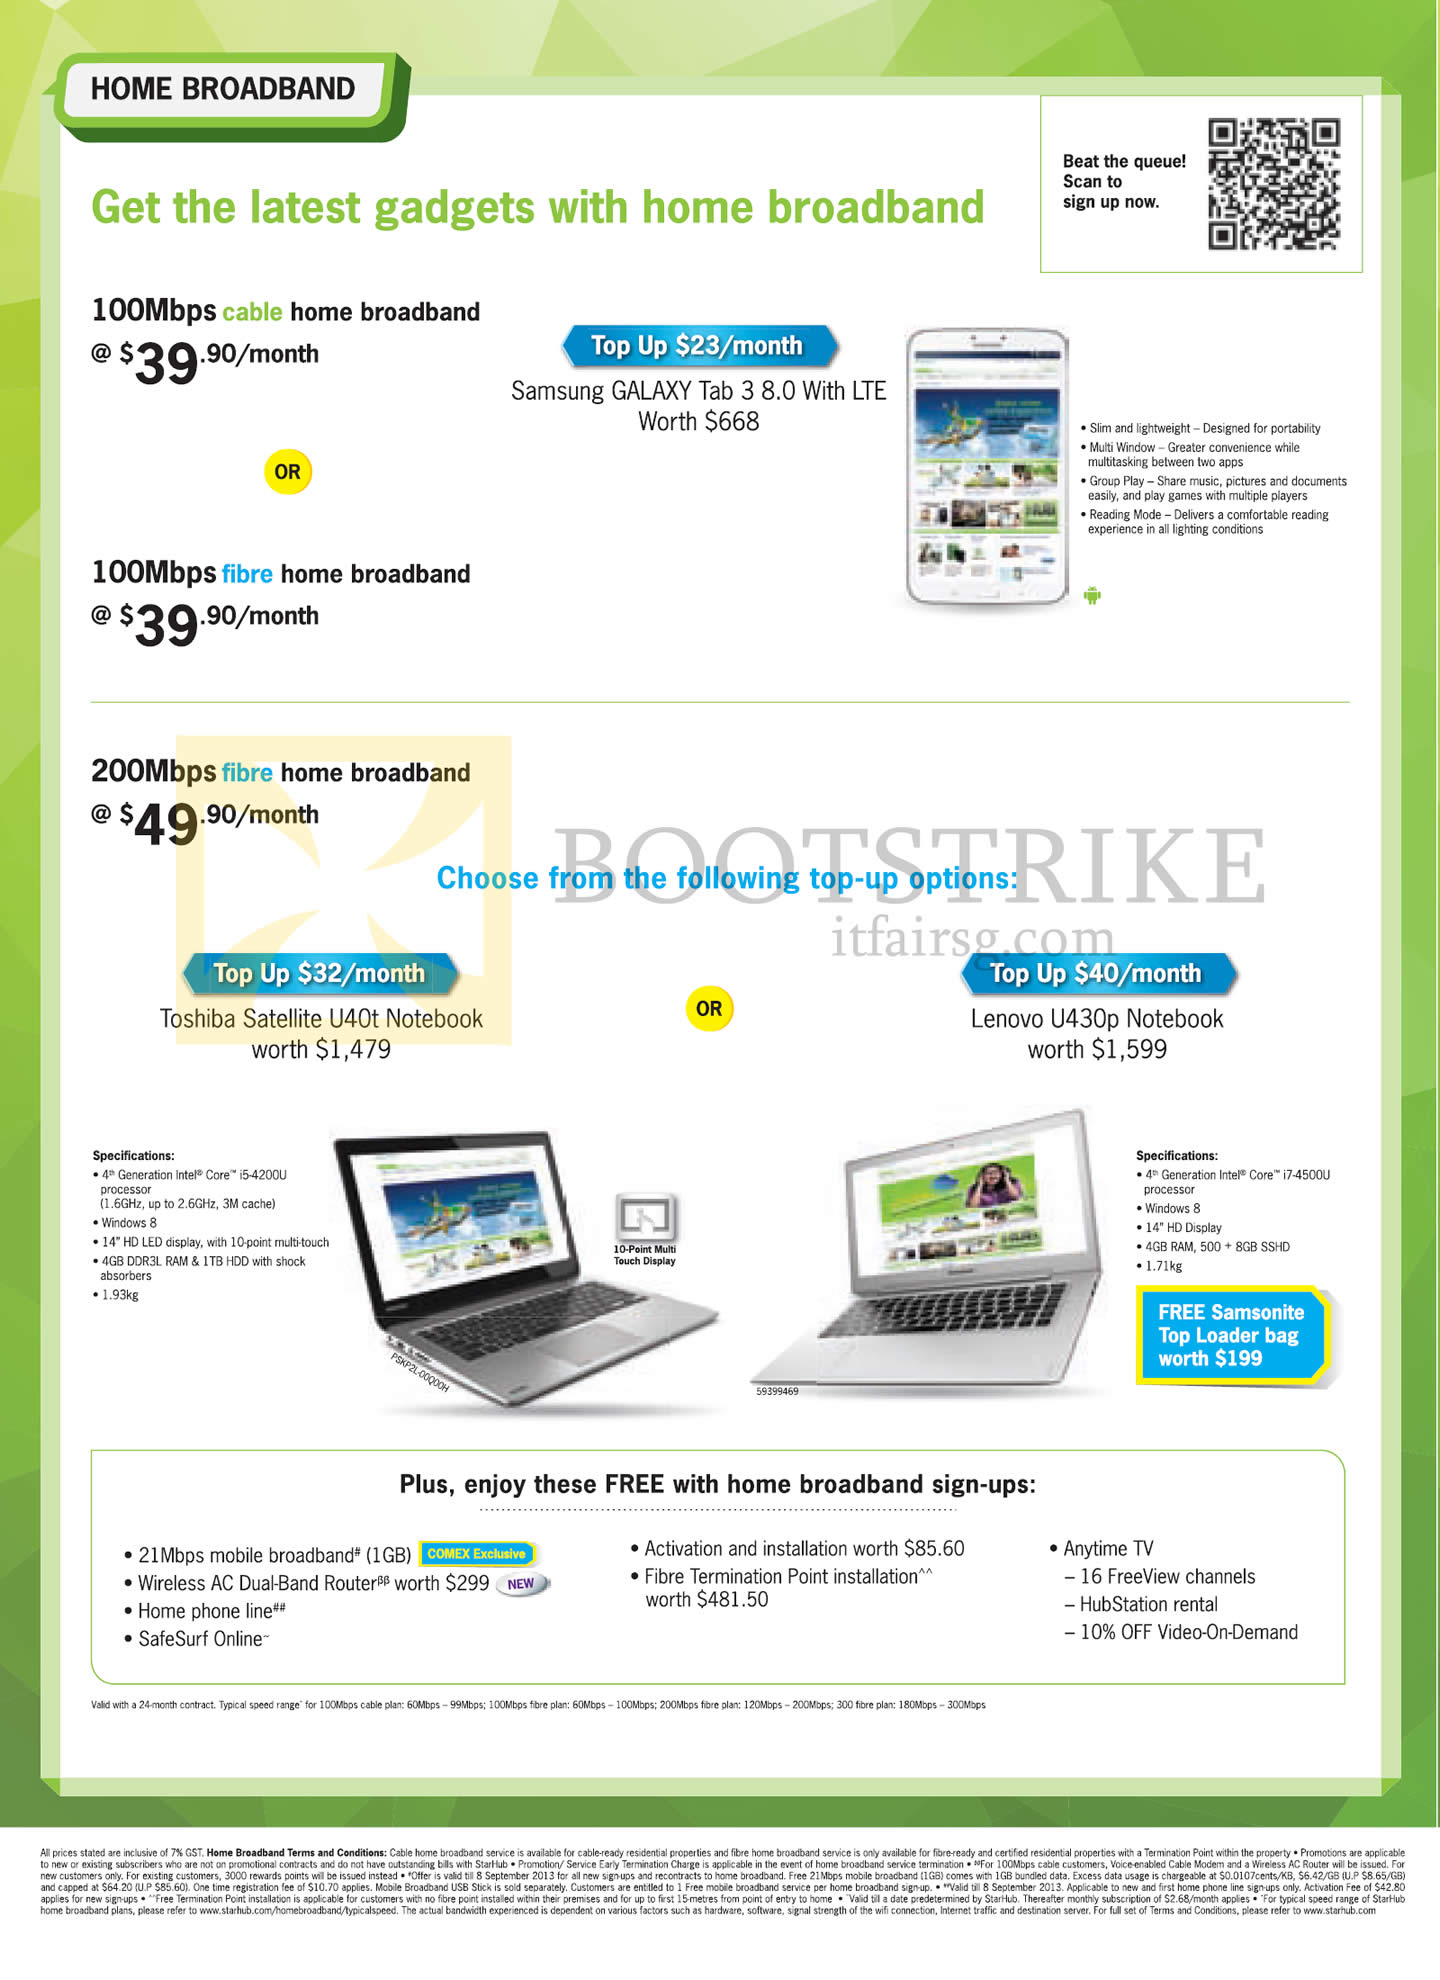 Samsung notebook in singapore - Comex 2013 Price List Image Brochure Of Starhub Broadband Cable 100mbps Samsung Galaxy Note 3